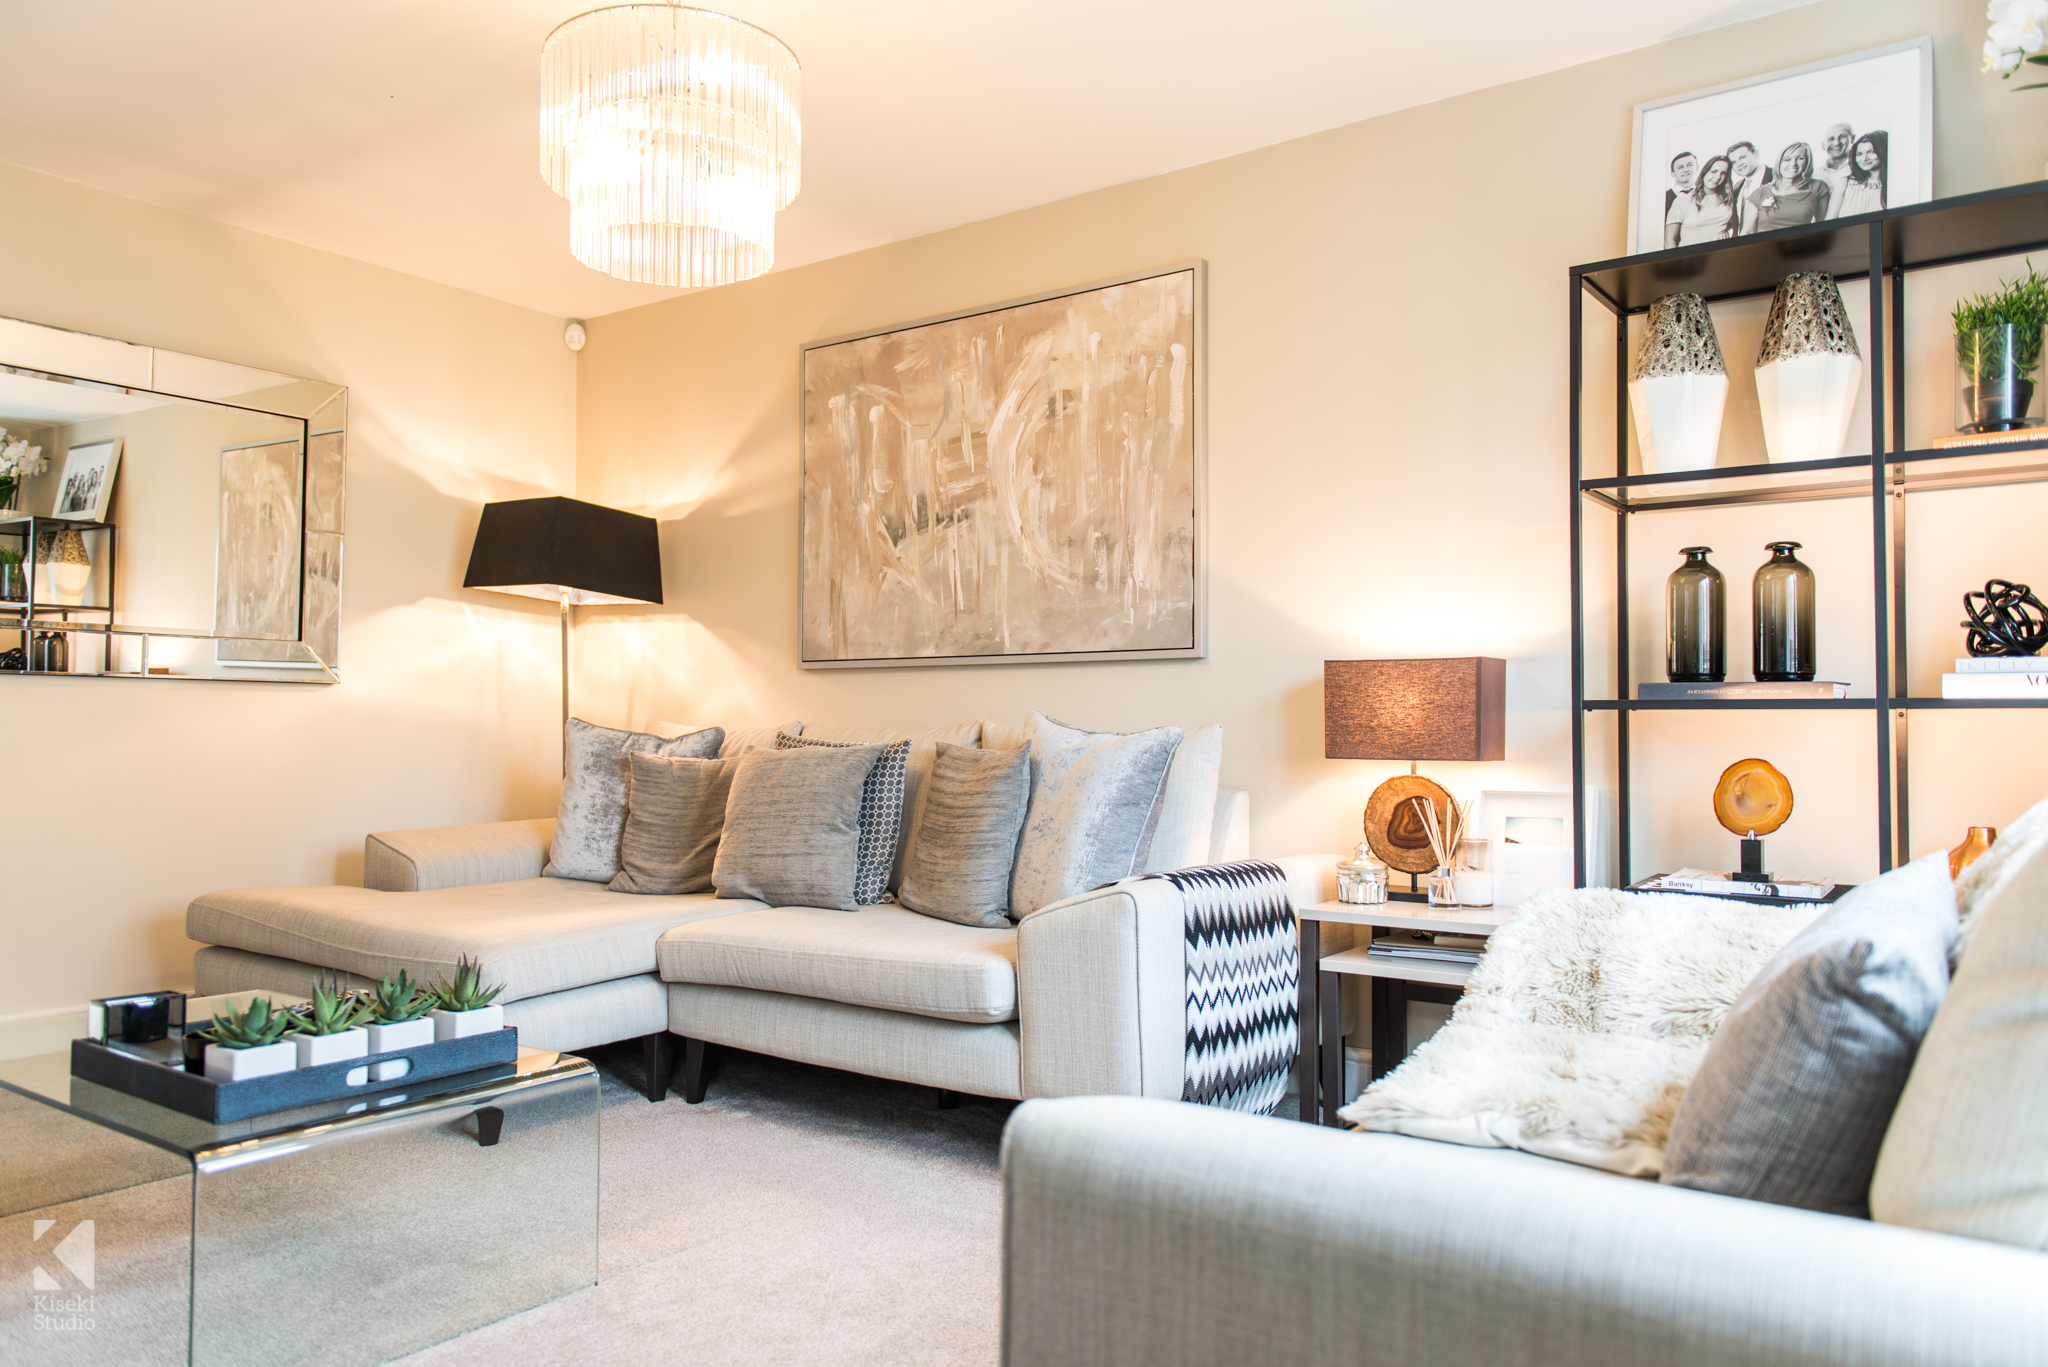 Modern Property Interior Living Room Neutral Furnished Fresh Bright Warm in Baildon